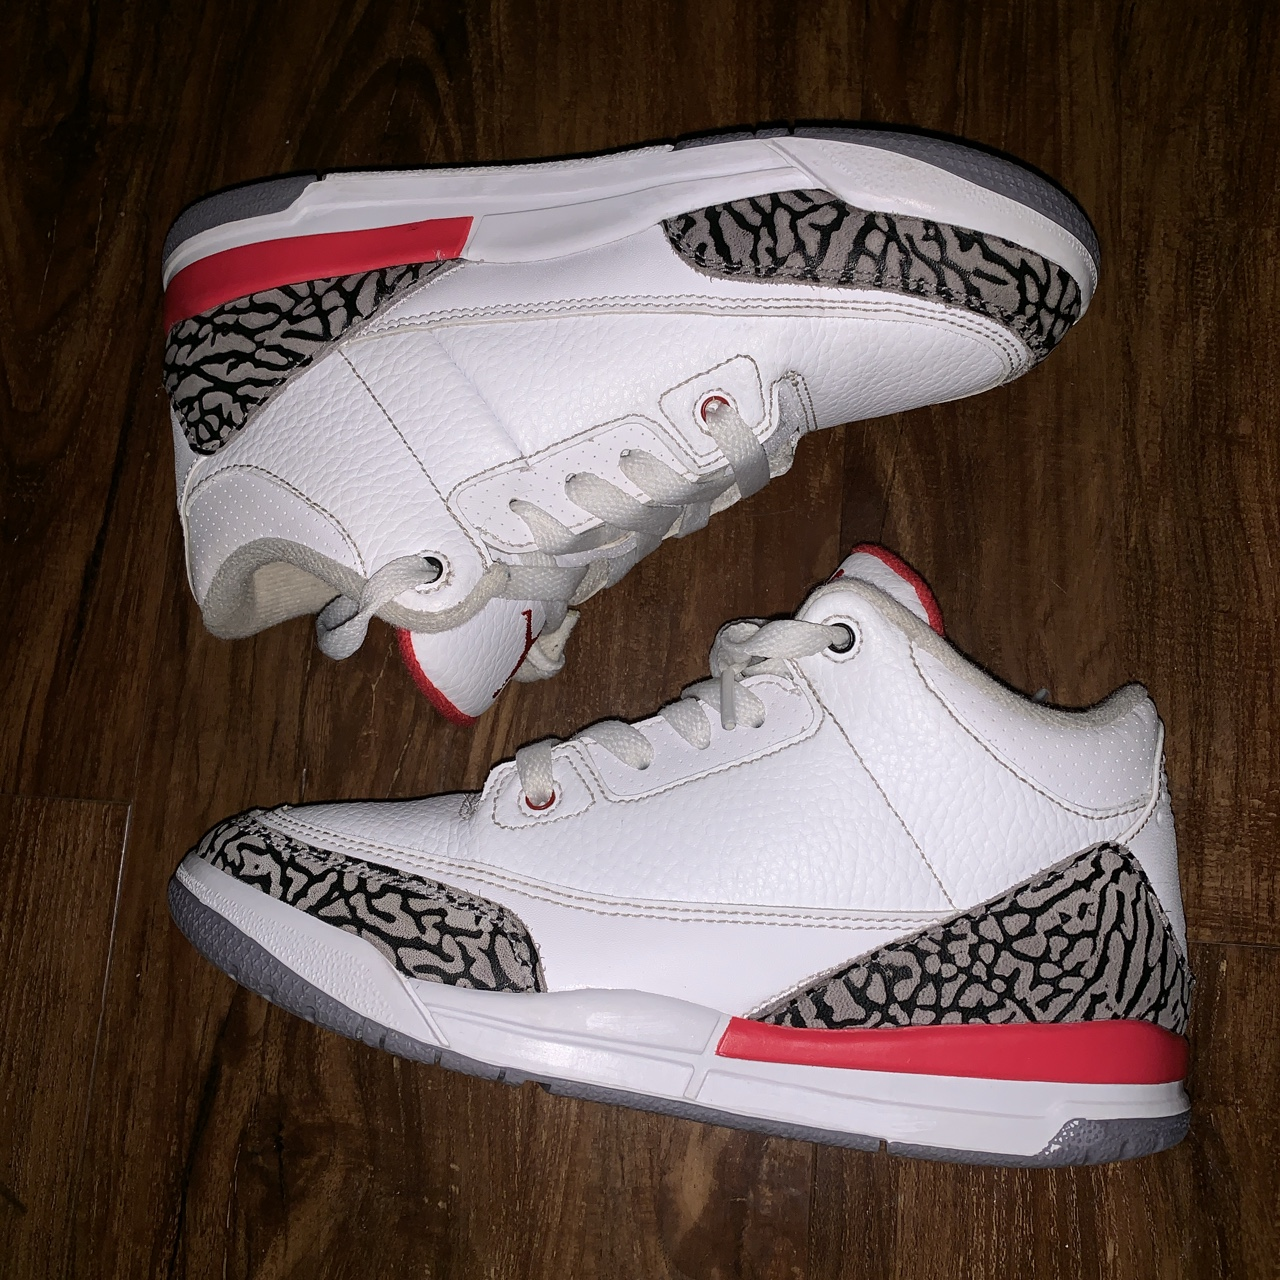 low priced 39274 b0329 AIR JORDAN 3 KATRINA Retro 3 Kids Size 2.5y great... - Depop